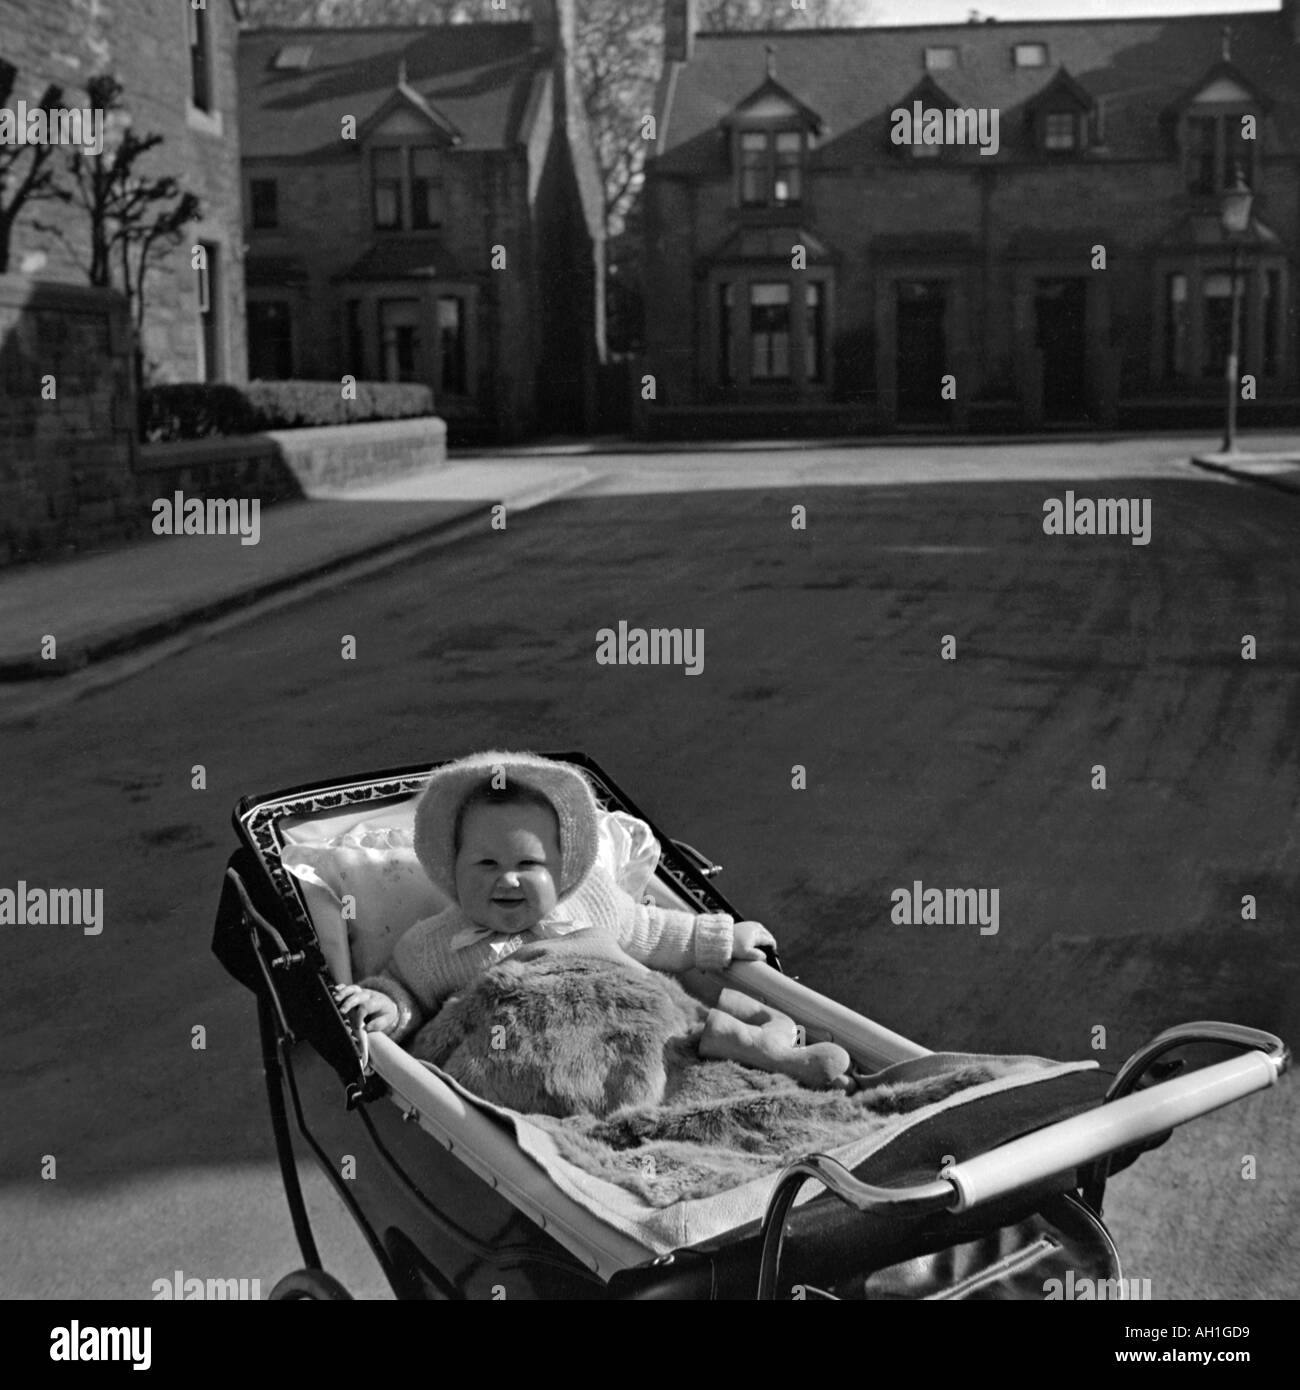 OLD VINTAGE FAMILY SNAPSHOT PHOTOGRAPH OF BABY GIRL IN PRAM IN MIDDLE OF EMPTY STREET - Stock Image